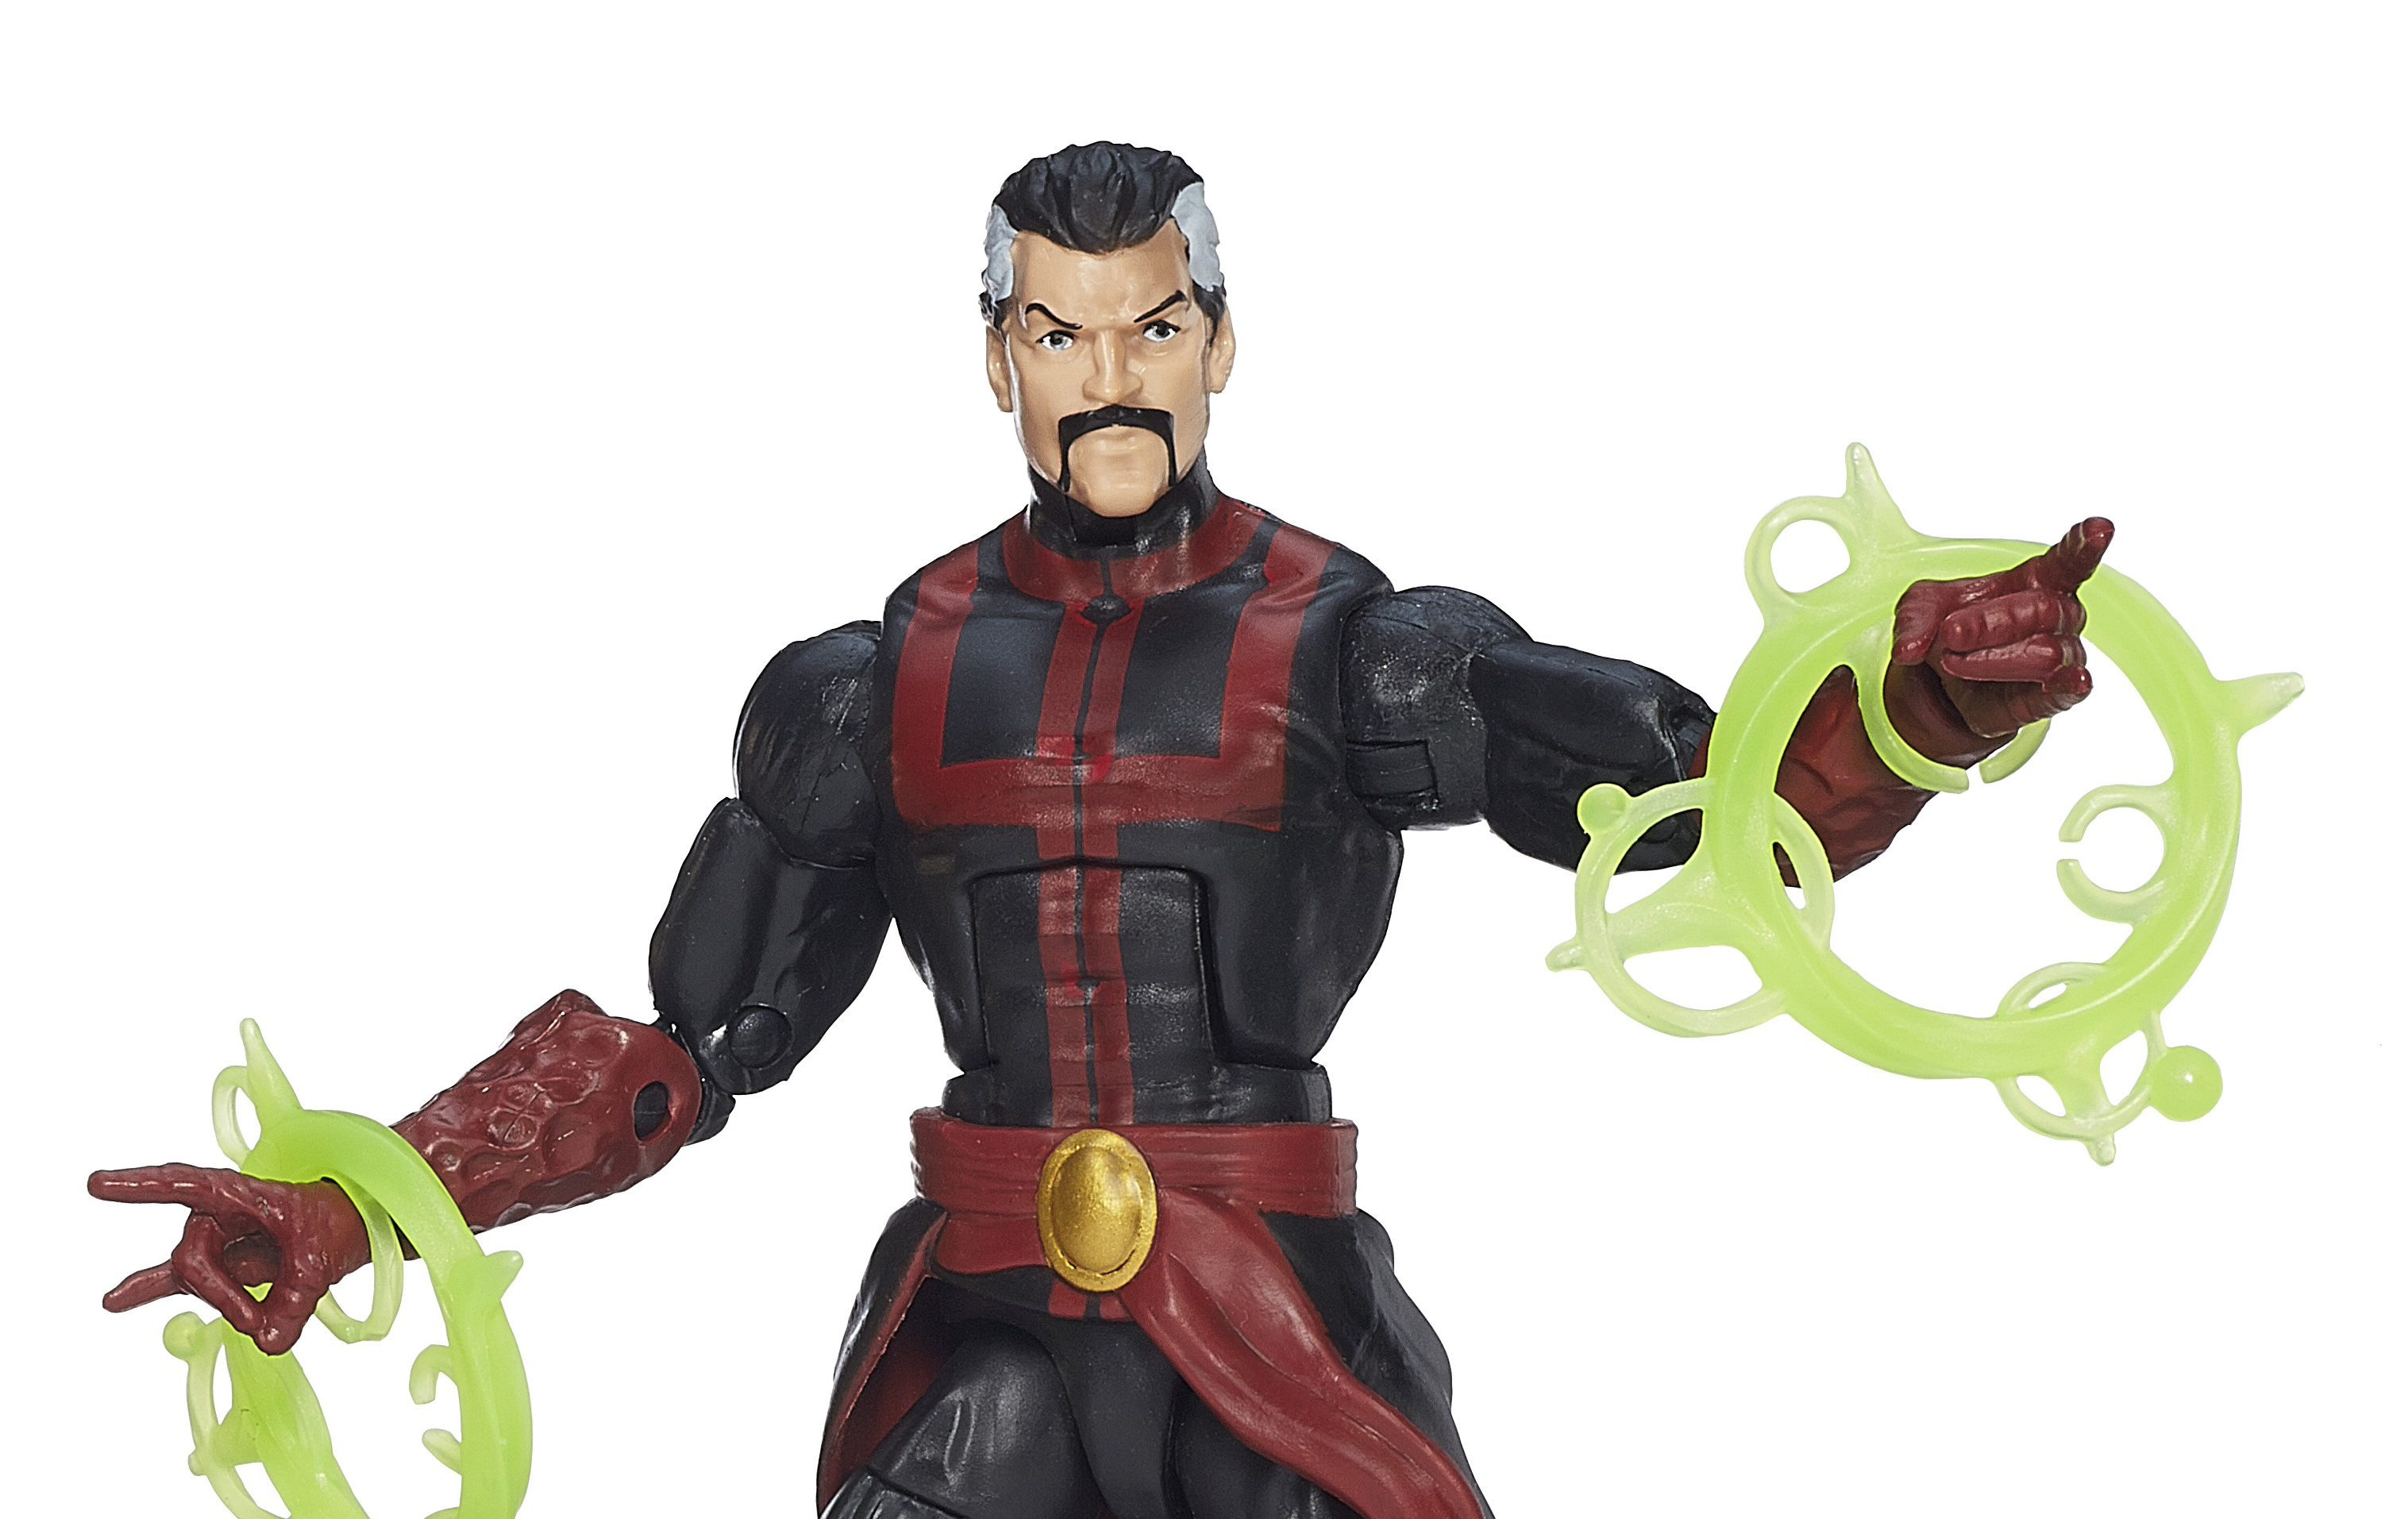 Hasbro Marvel Legends Hulkbuster Series Carded Images!